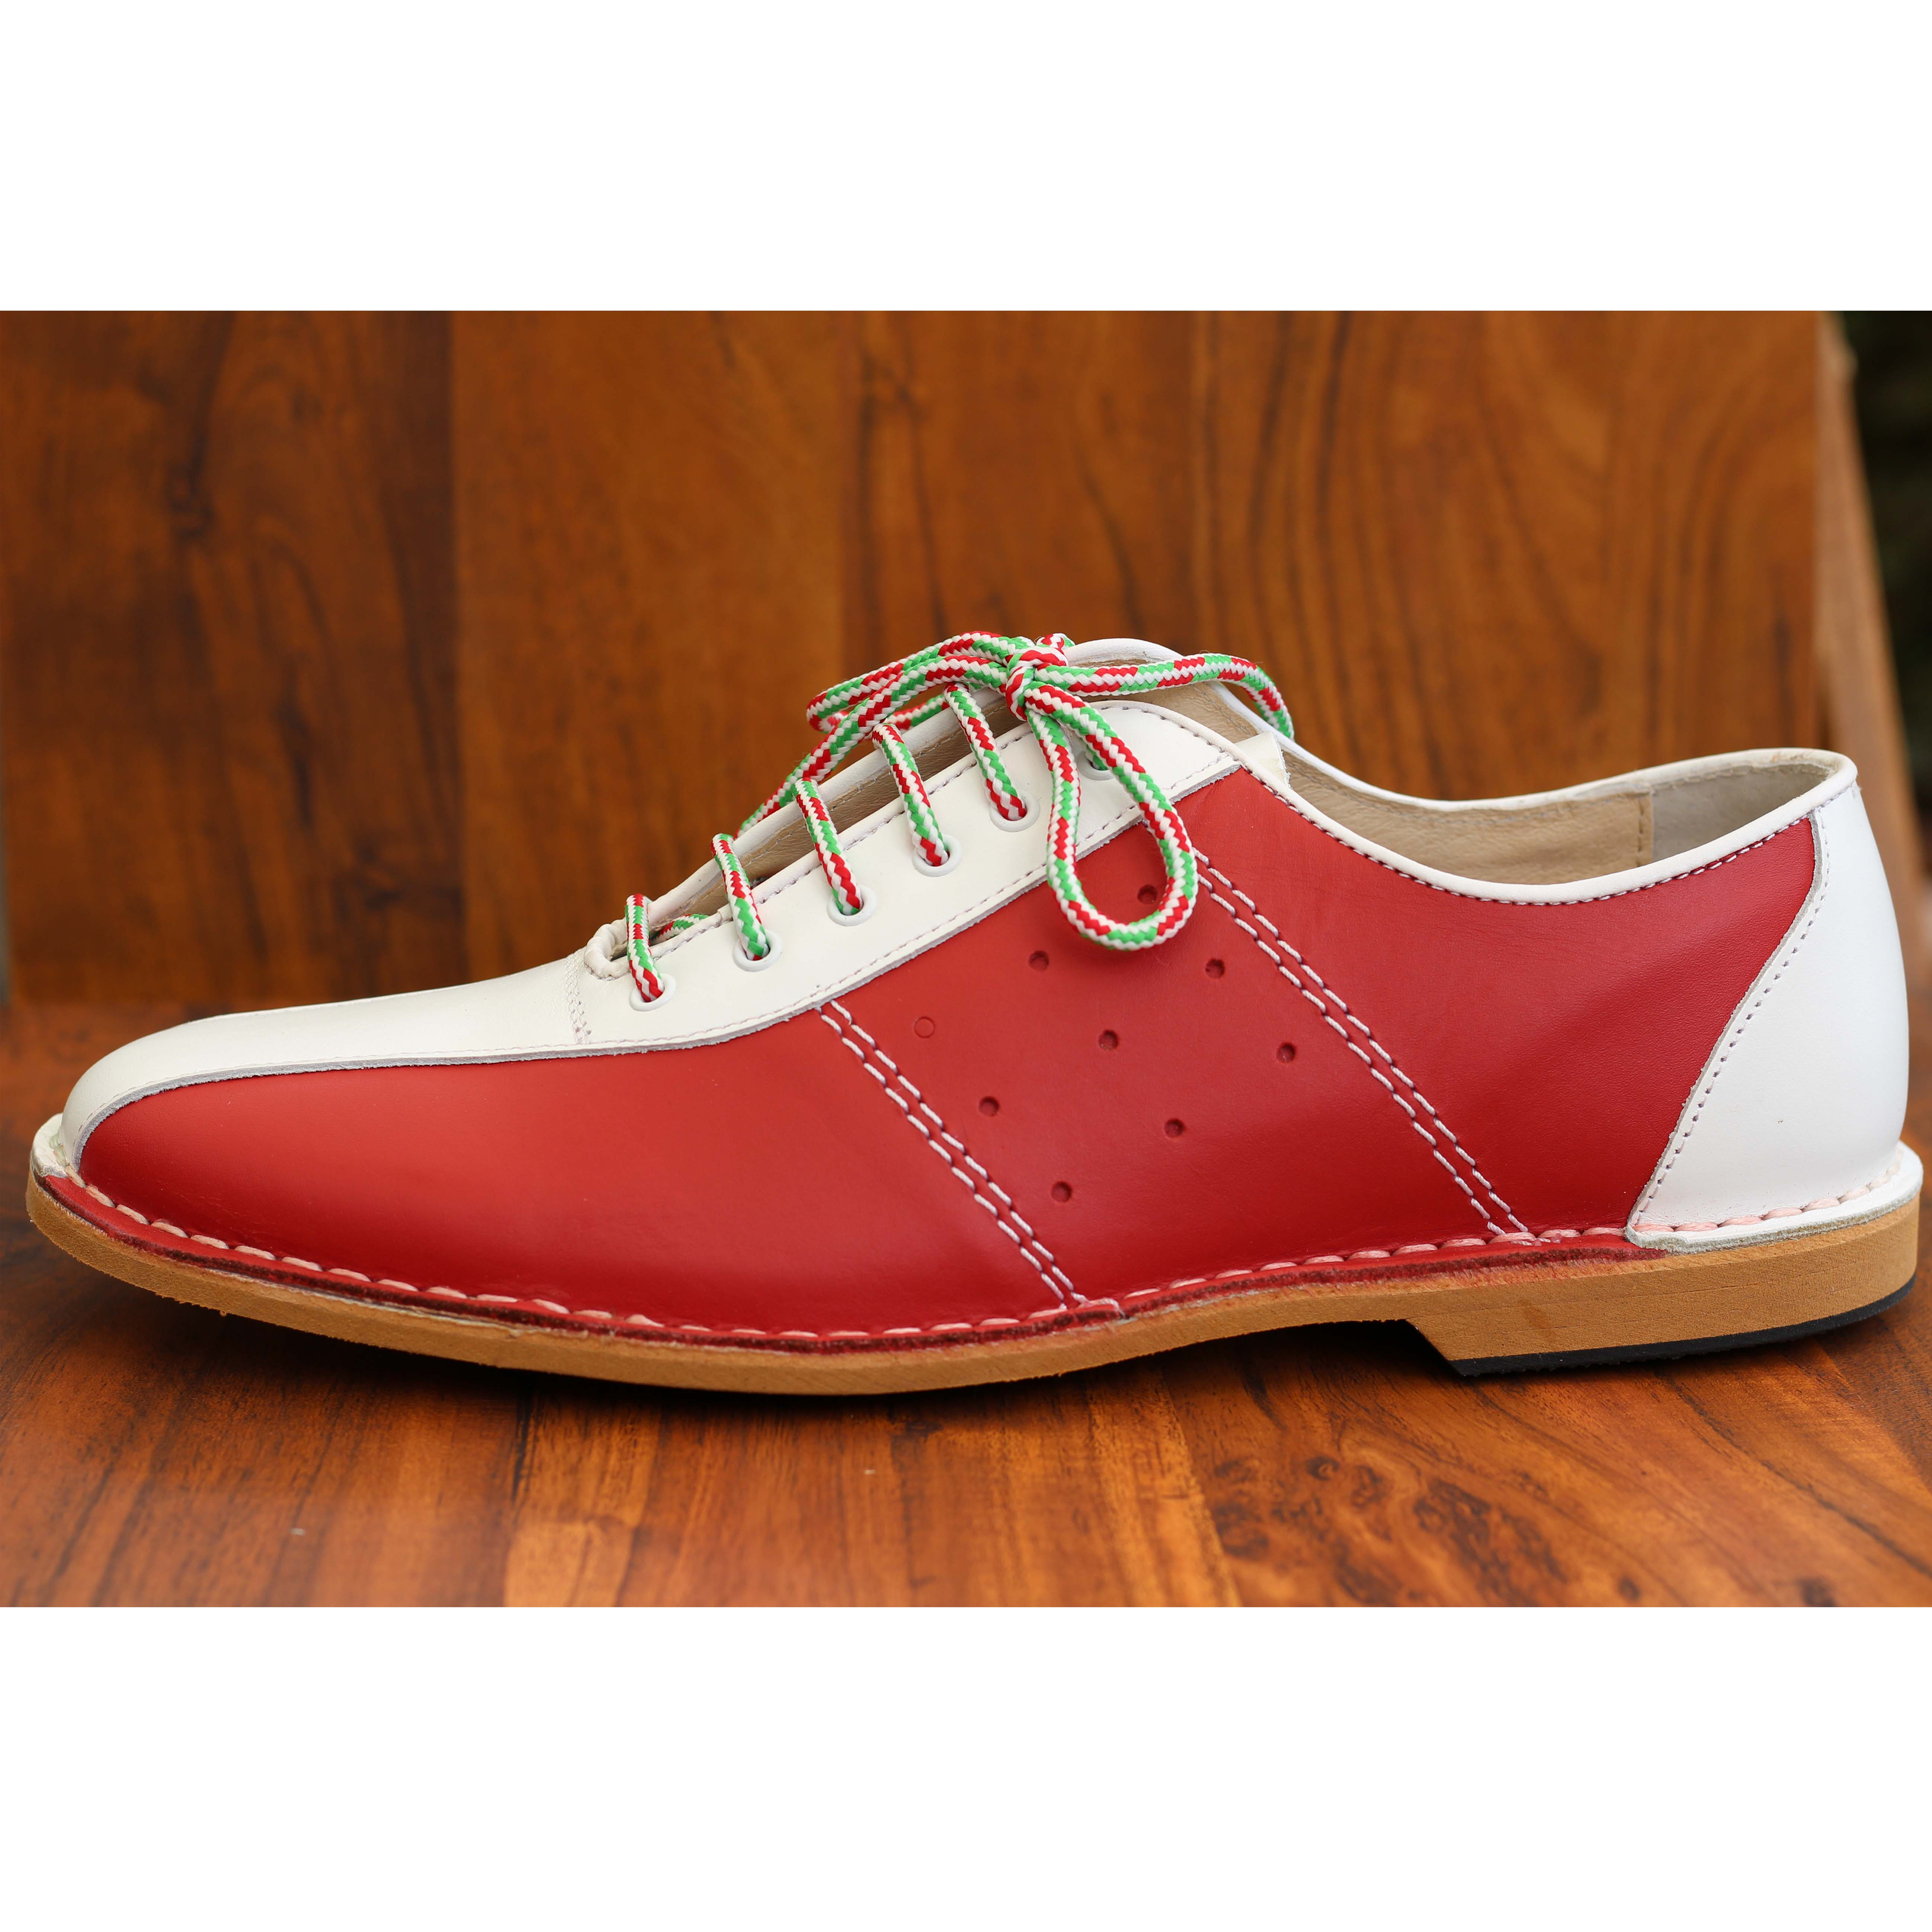 Delicious Junction Watts Bowling Shoe Green Red Mod Northern Soul